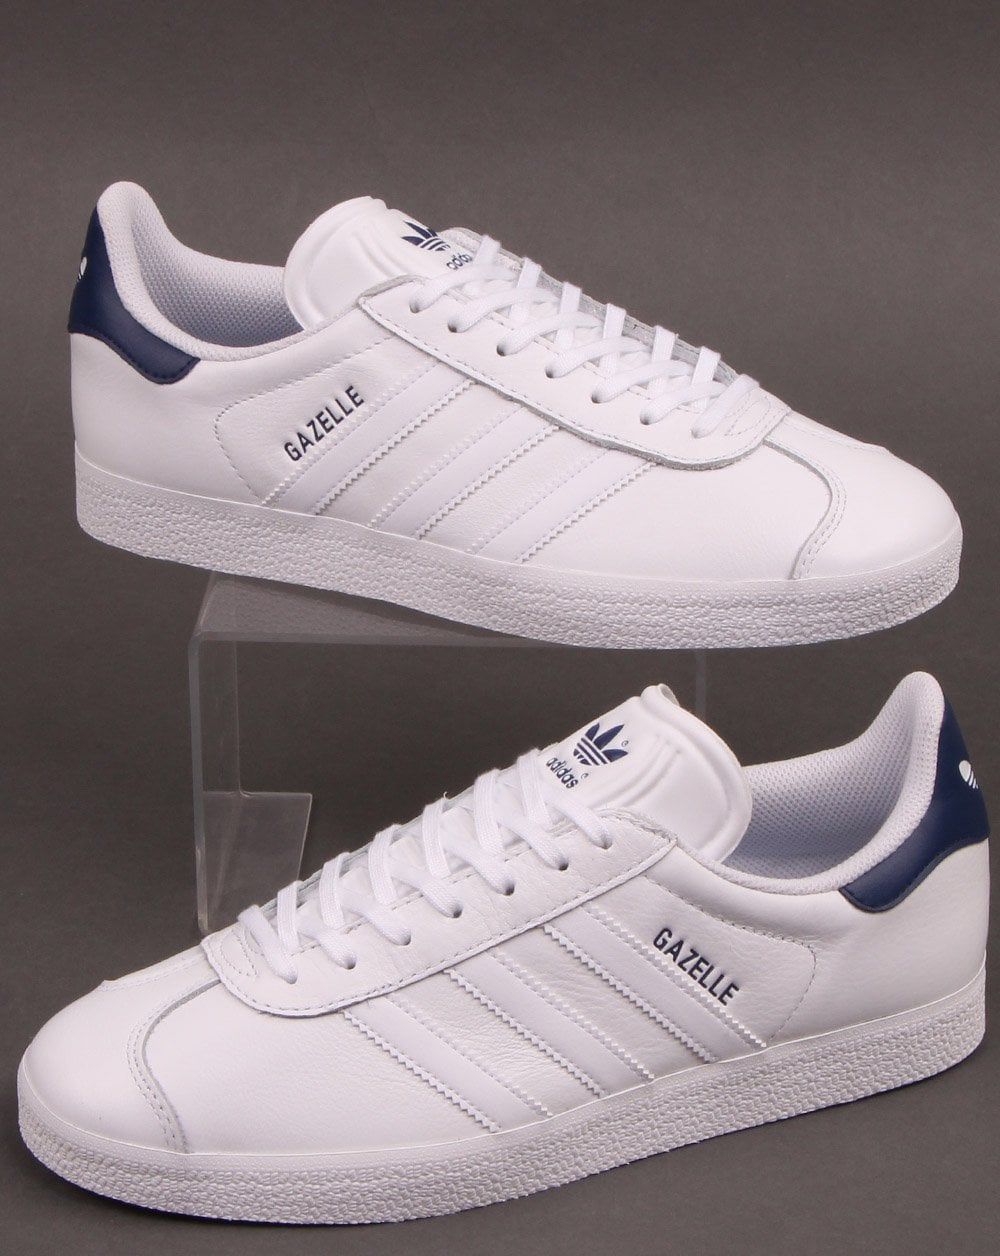 Adidas Gazelle Leather Trainers WhiteNavy